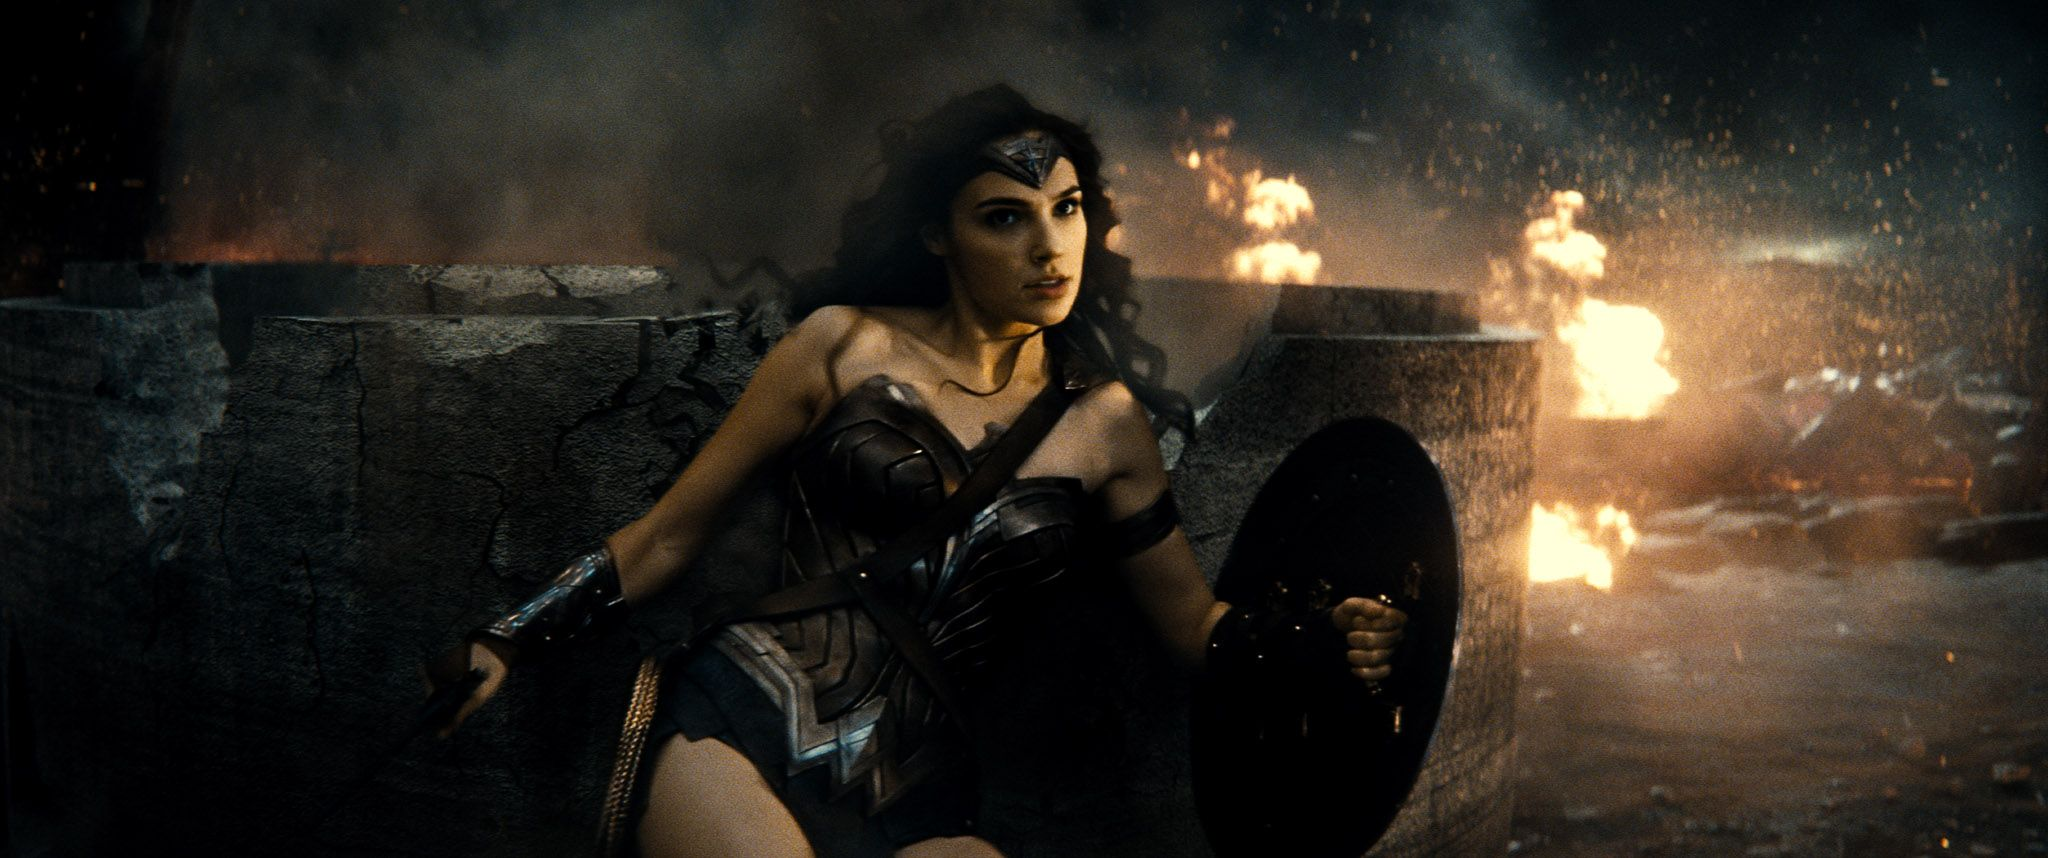 superman and wonder woman relationship in dawn of justice